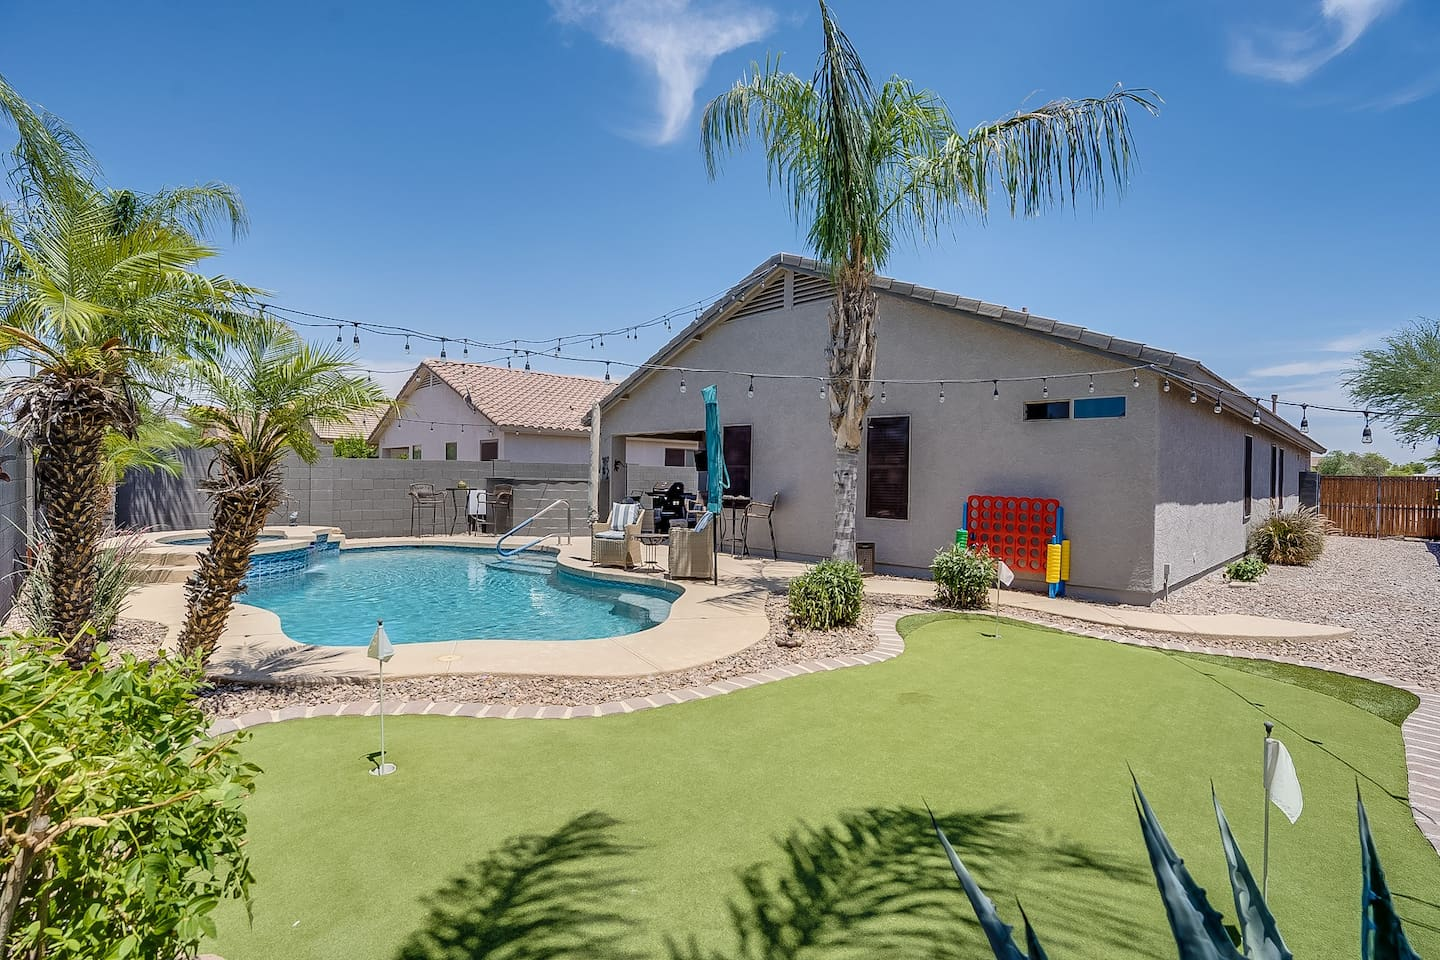 Large Pool and Jacuzzi. 3 hole Putting green. Outdoor games and Lounge chairs